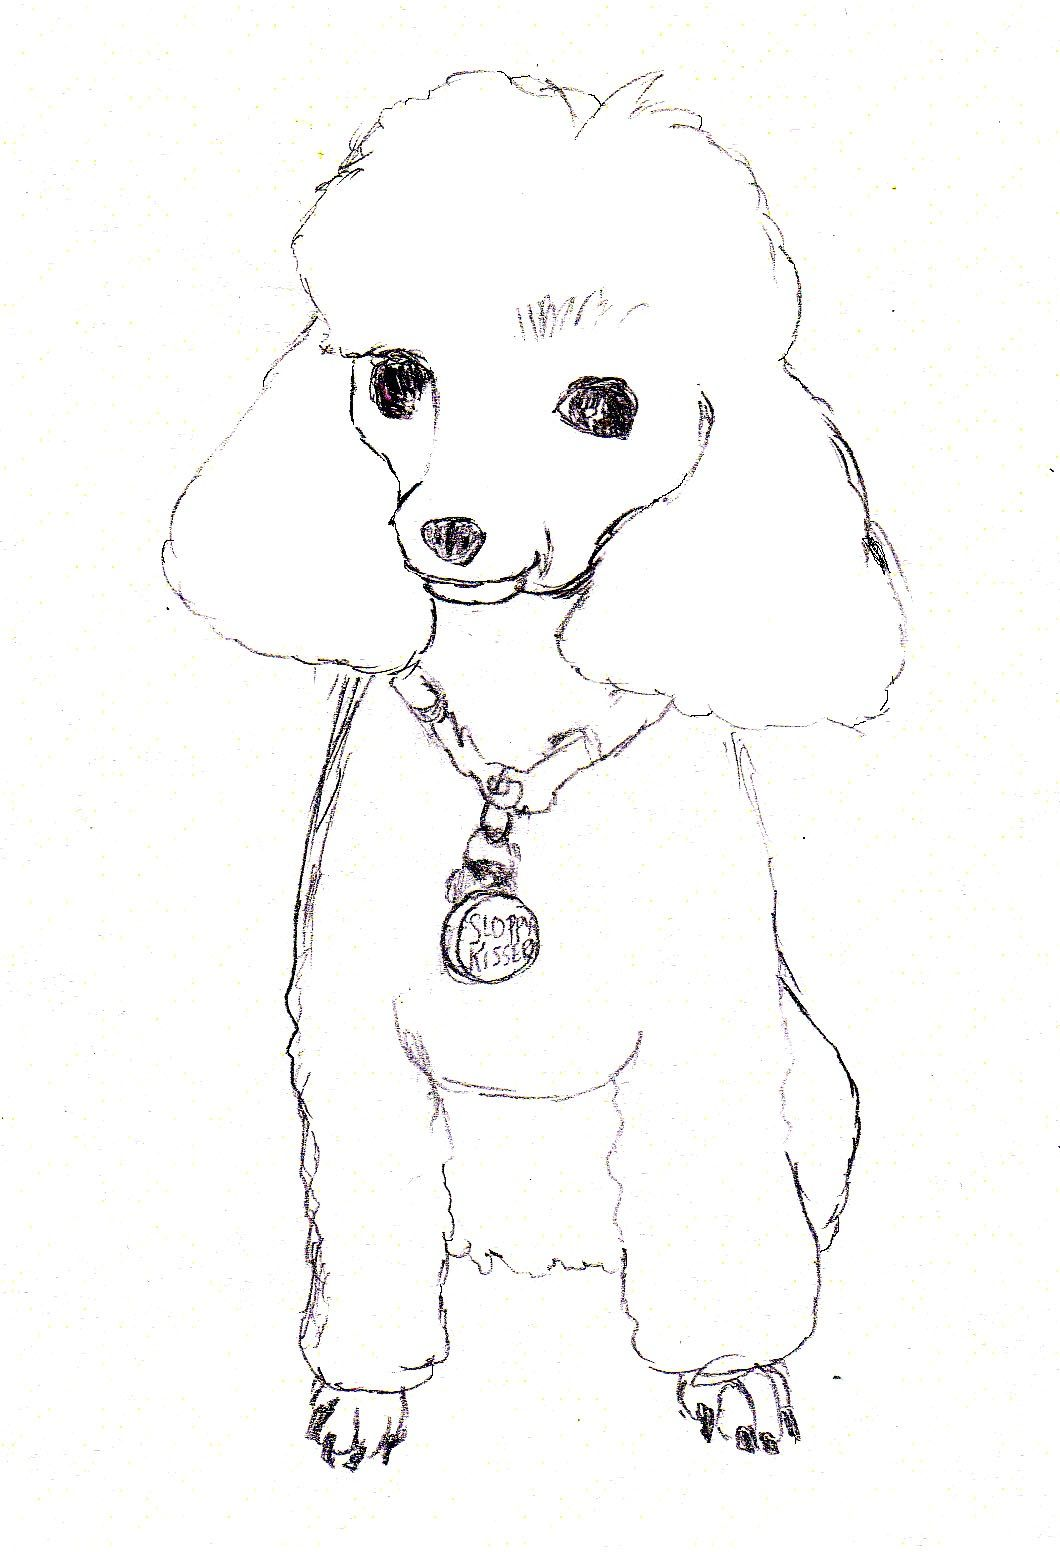 caricature artist sketching poodle - Google Search | Poodles ...